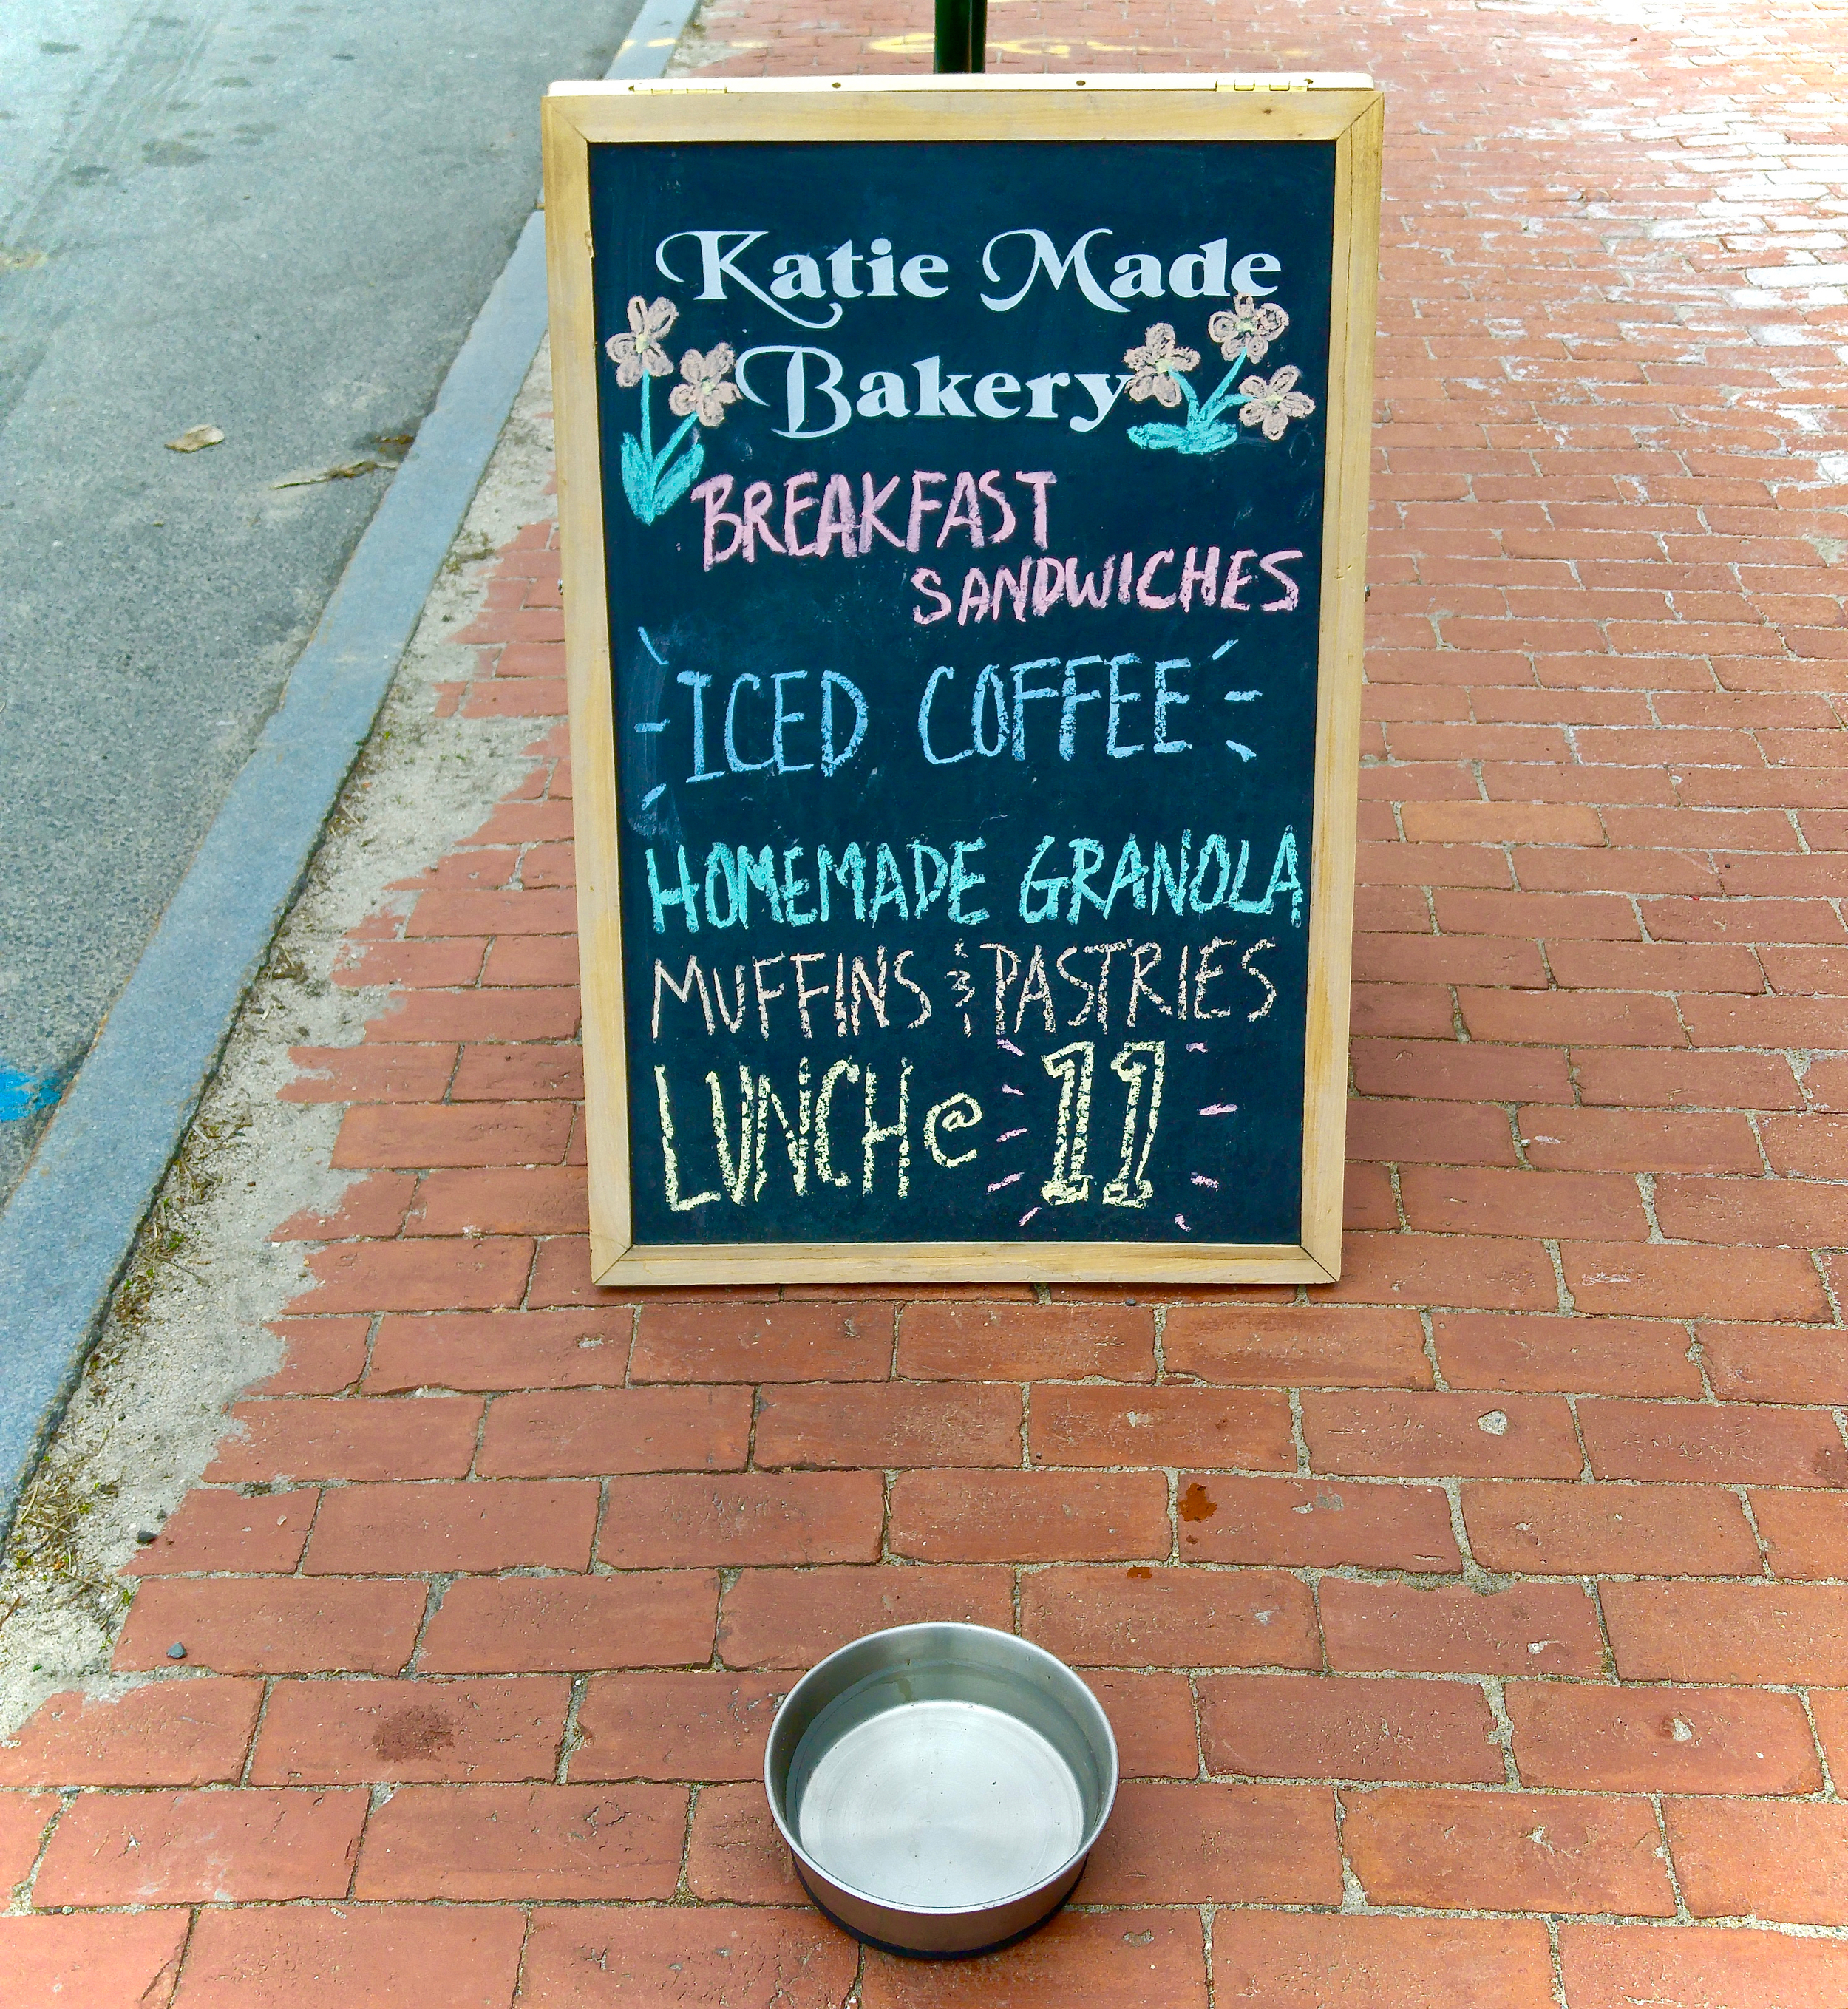 Katie Made is pup friendly, which is a surefire sign of good proprietors IMO.